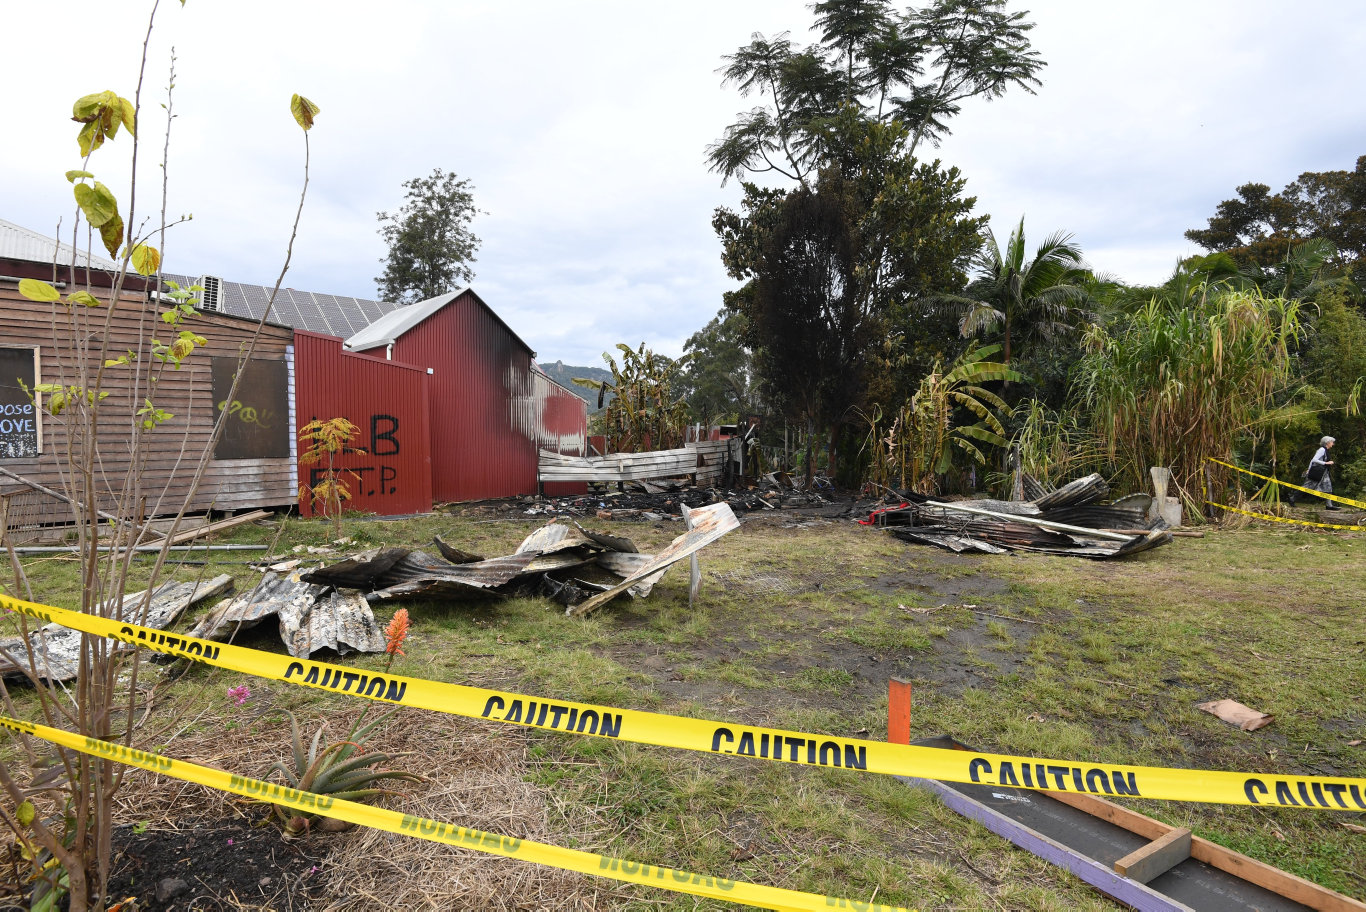 Fire destroyed a shed in Cullen St, Nimbin early Sunday morning. The structure was all that remained of the Nimbin Museum after a fire in 2014.